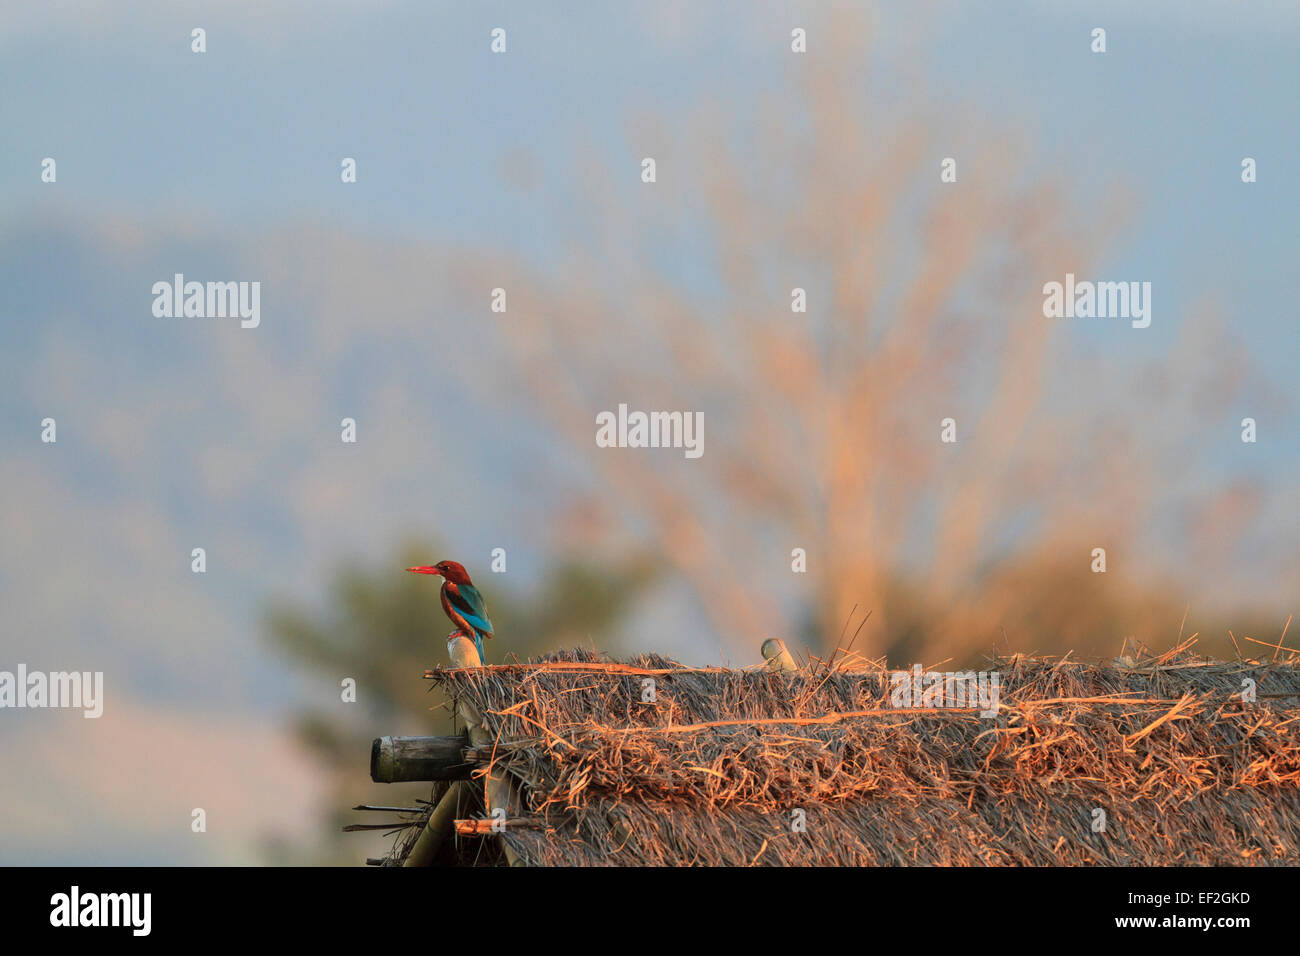 White-throated Kingfisher (Halcyon smyrnensis) perched on a barn roof. Tha Ton. Chiang Mai province. Thailand. - Stock Image